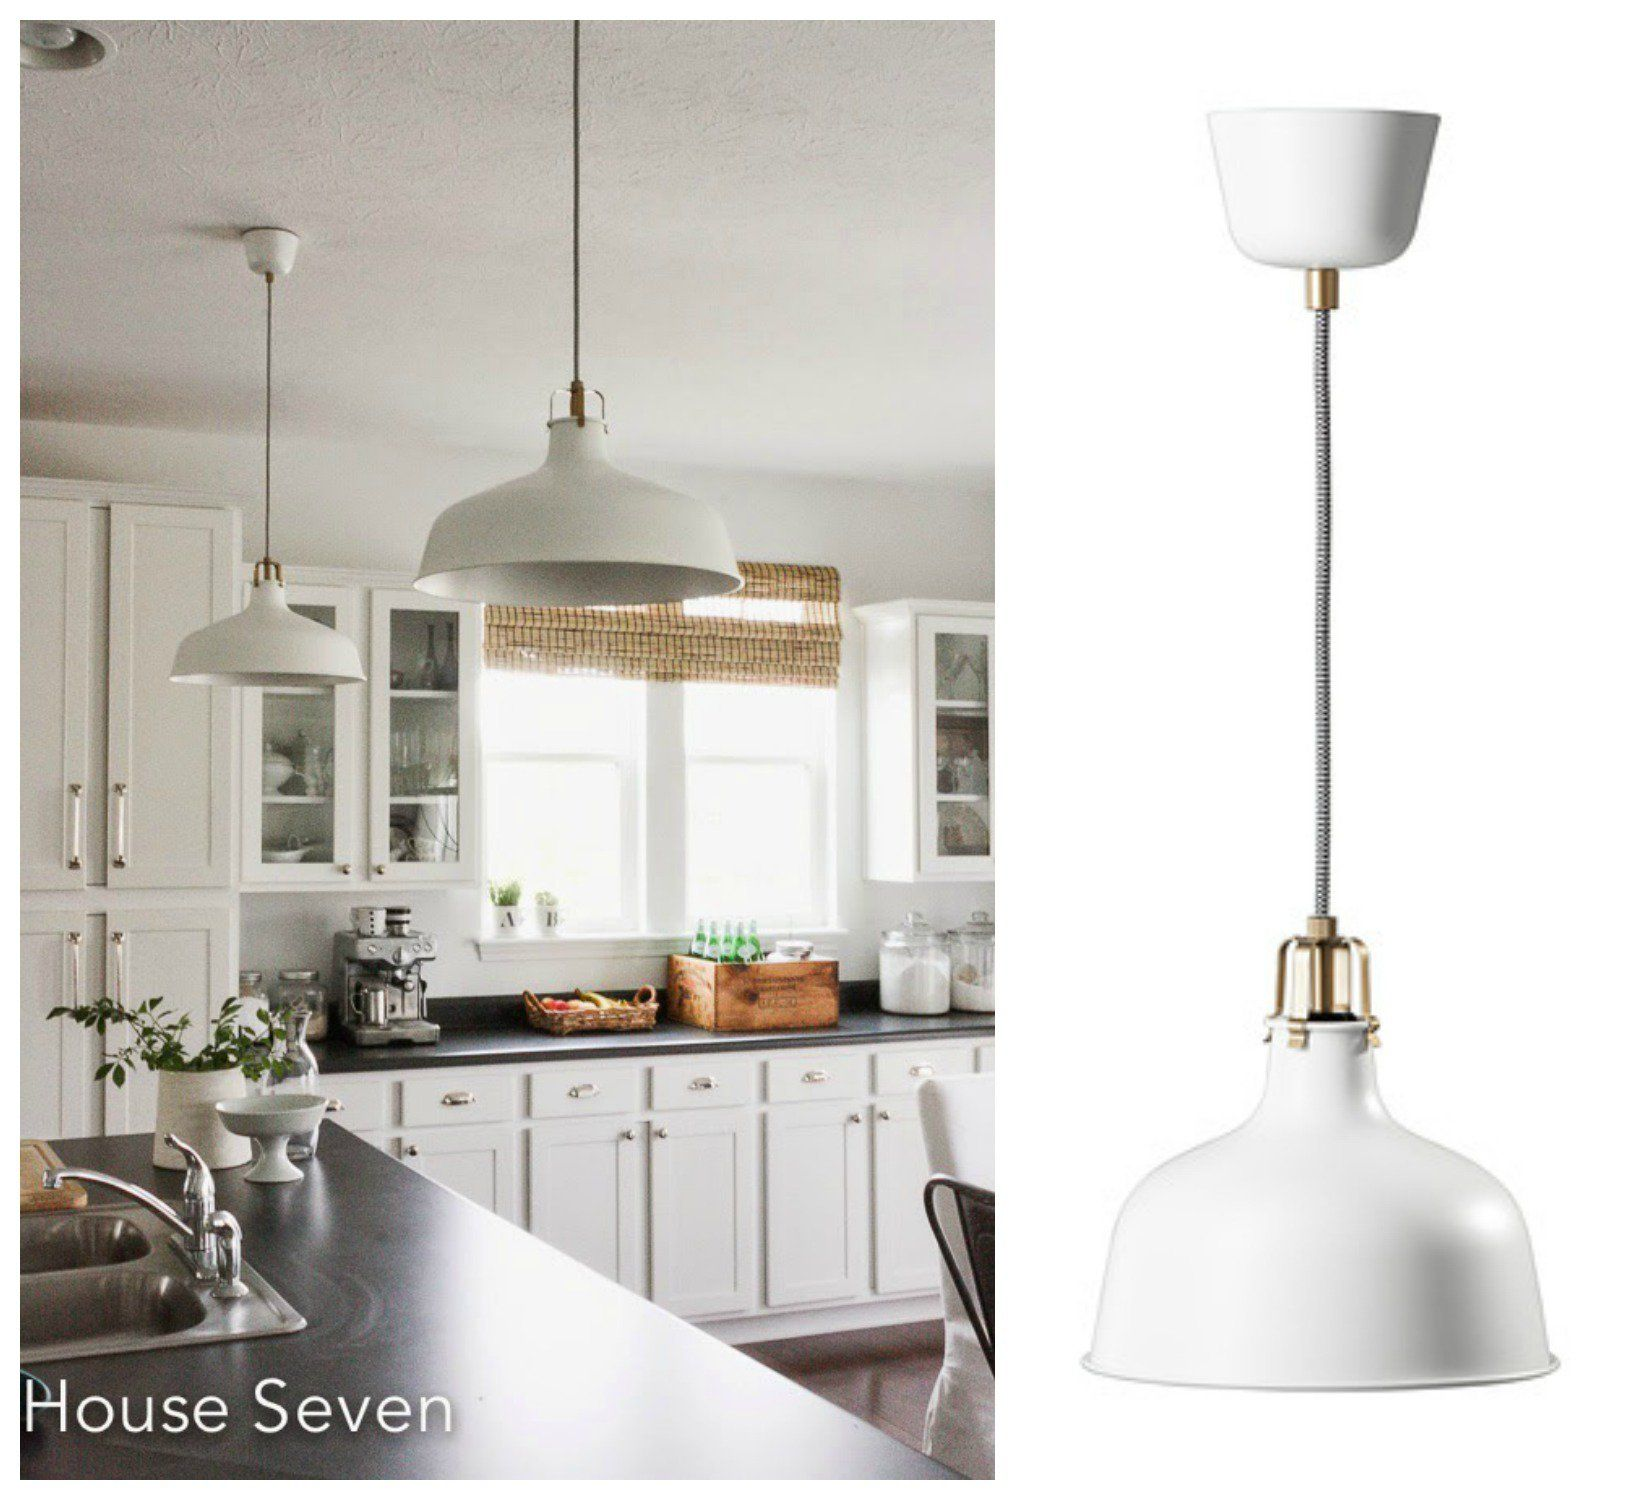 RANARPpendantlightfromikea Kitchen Dining Room Pinterest - Kitchen pendant lighting ikea